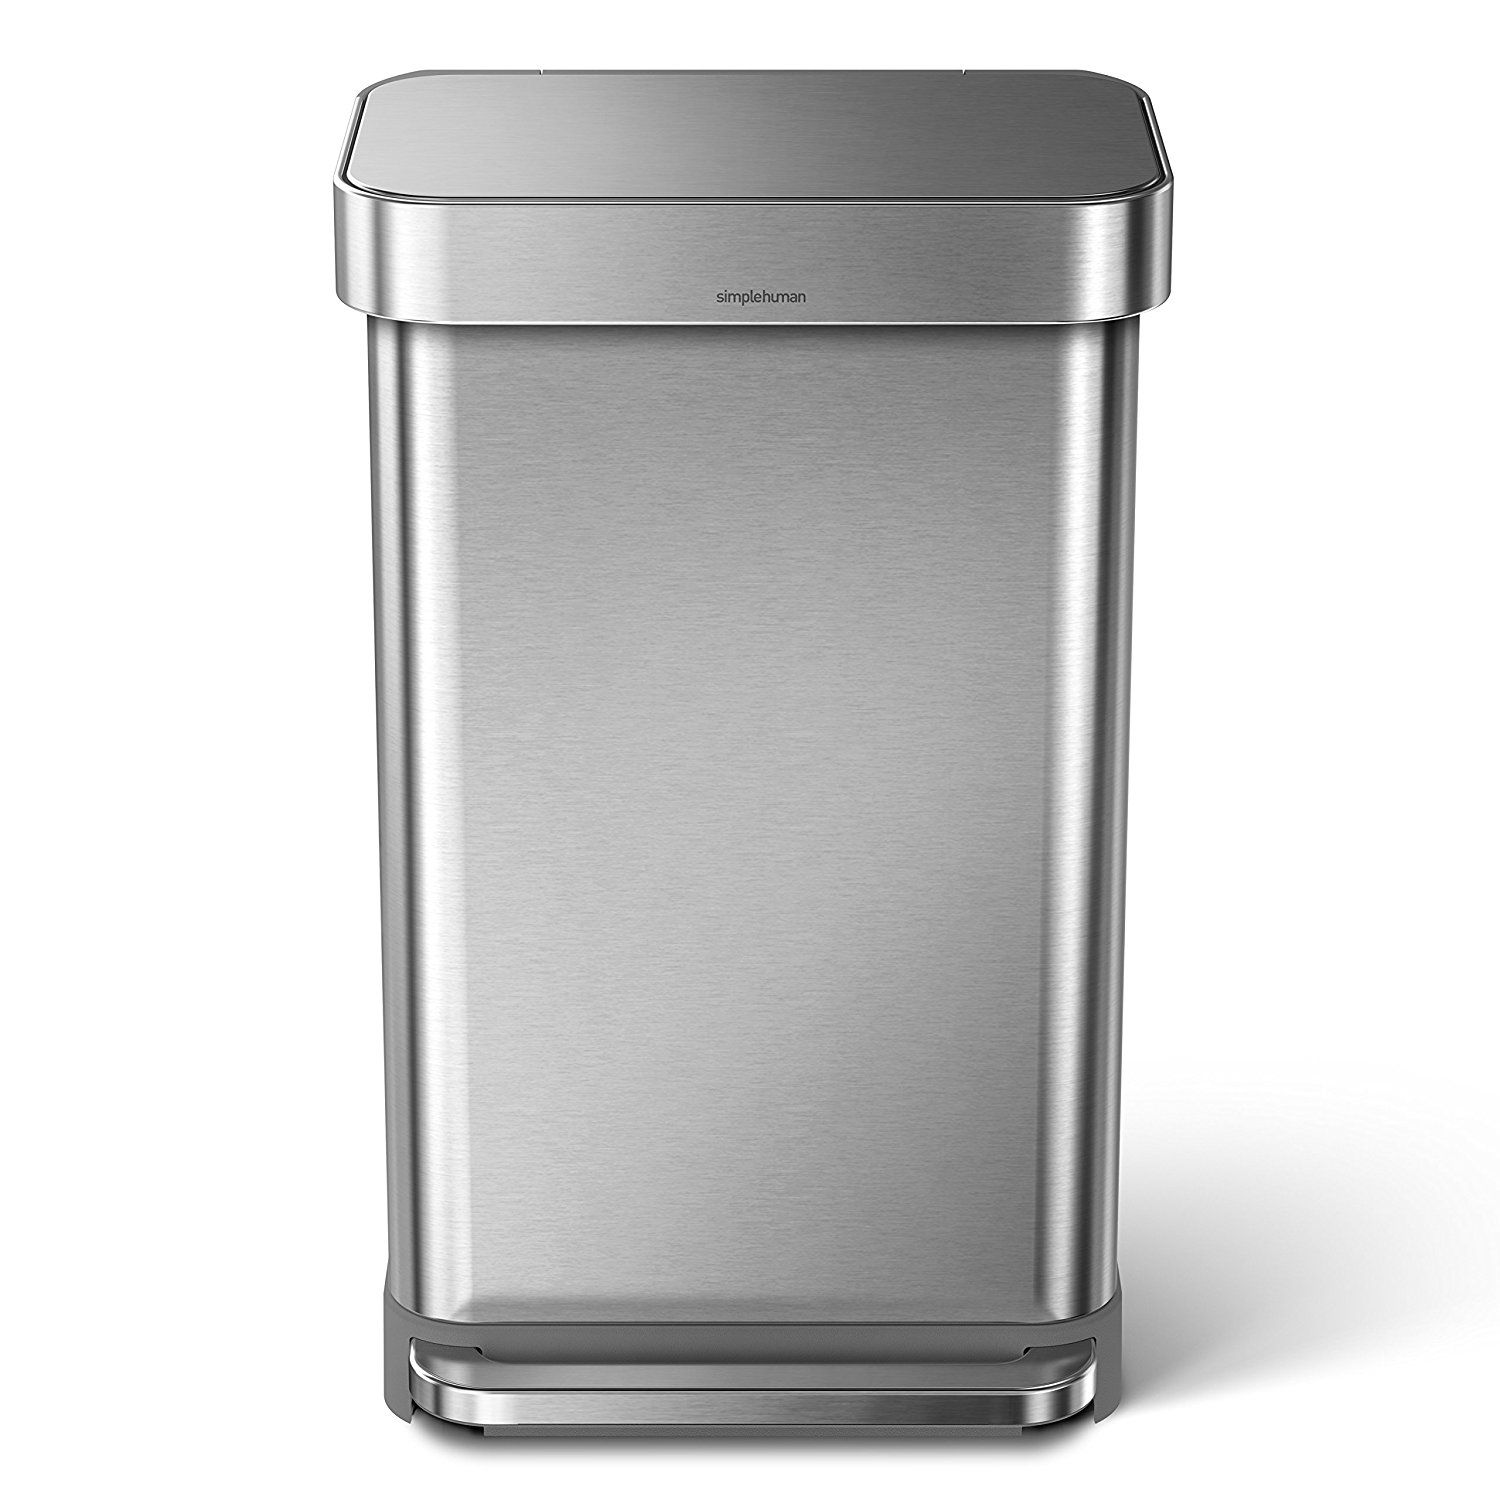 simplehuman 45 Liter/12 Gallon Stainless Steel Rectangular Kitchen Step Trash Can with Liner Pocket